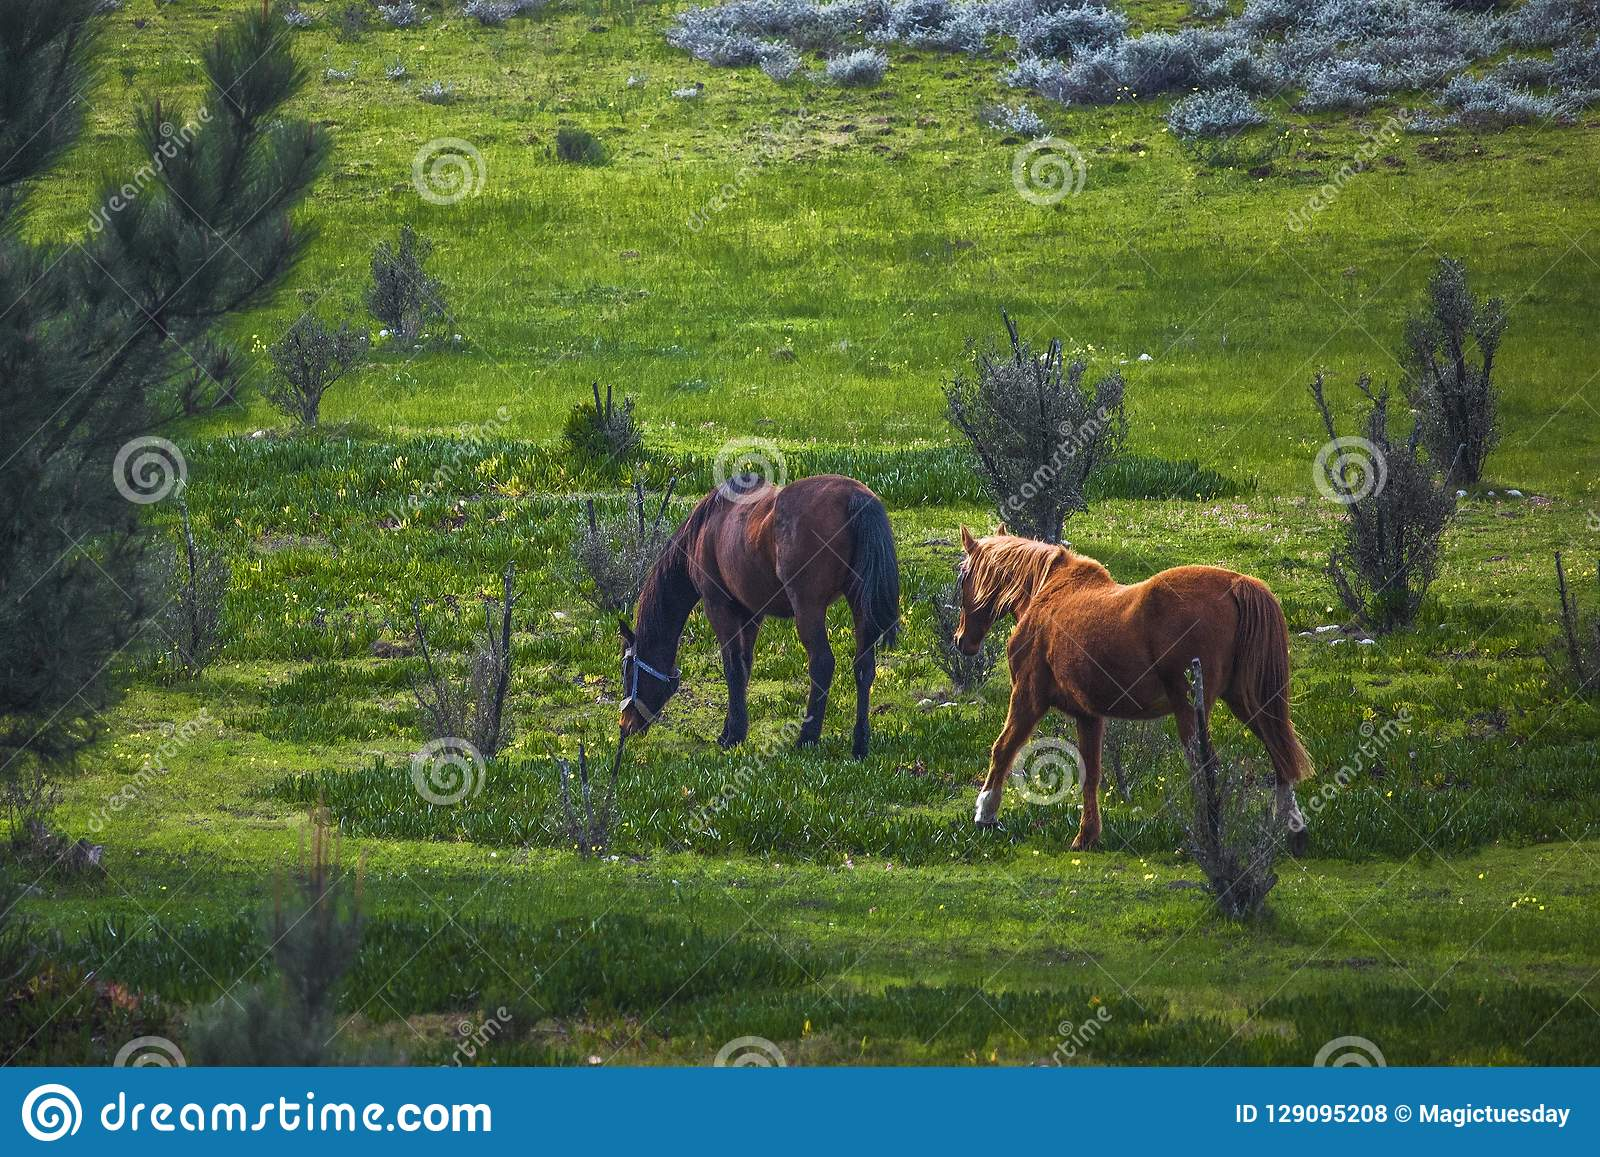 Stallion and mare horses walking in a green field on a farm.